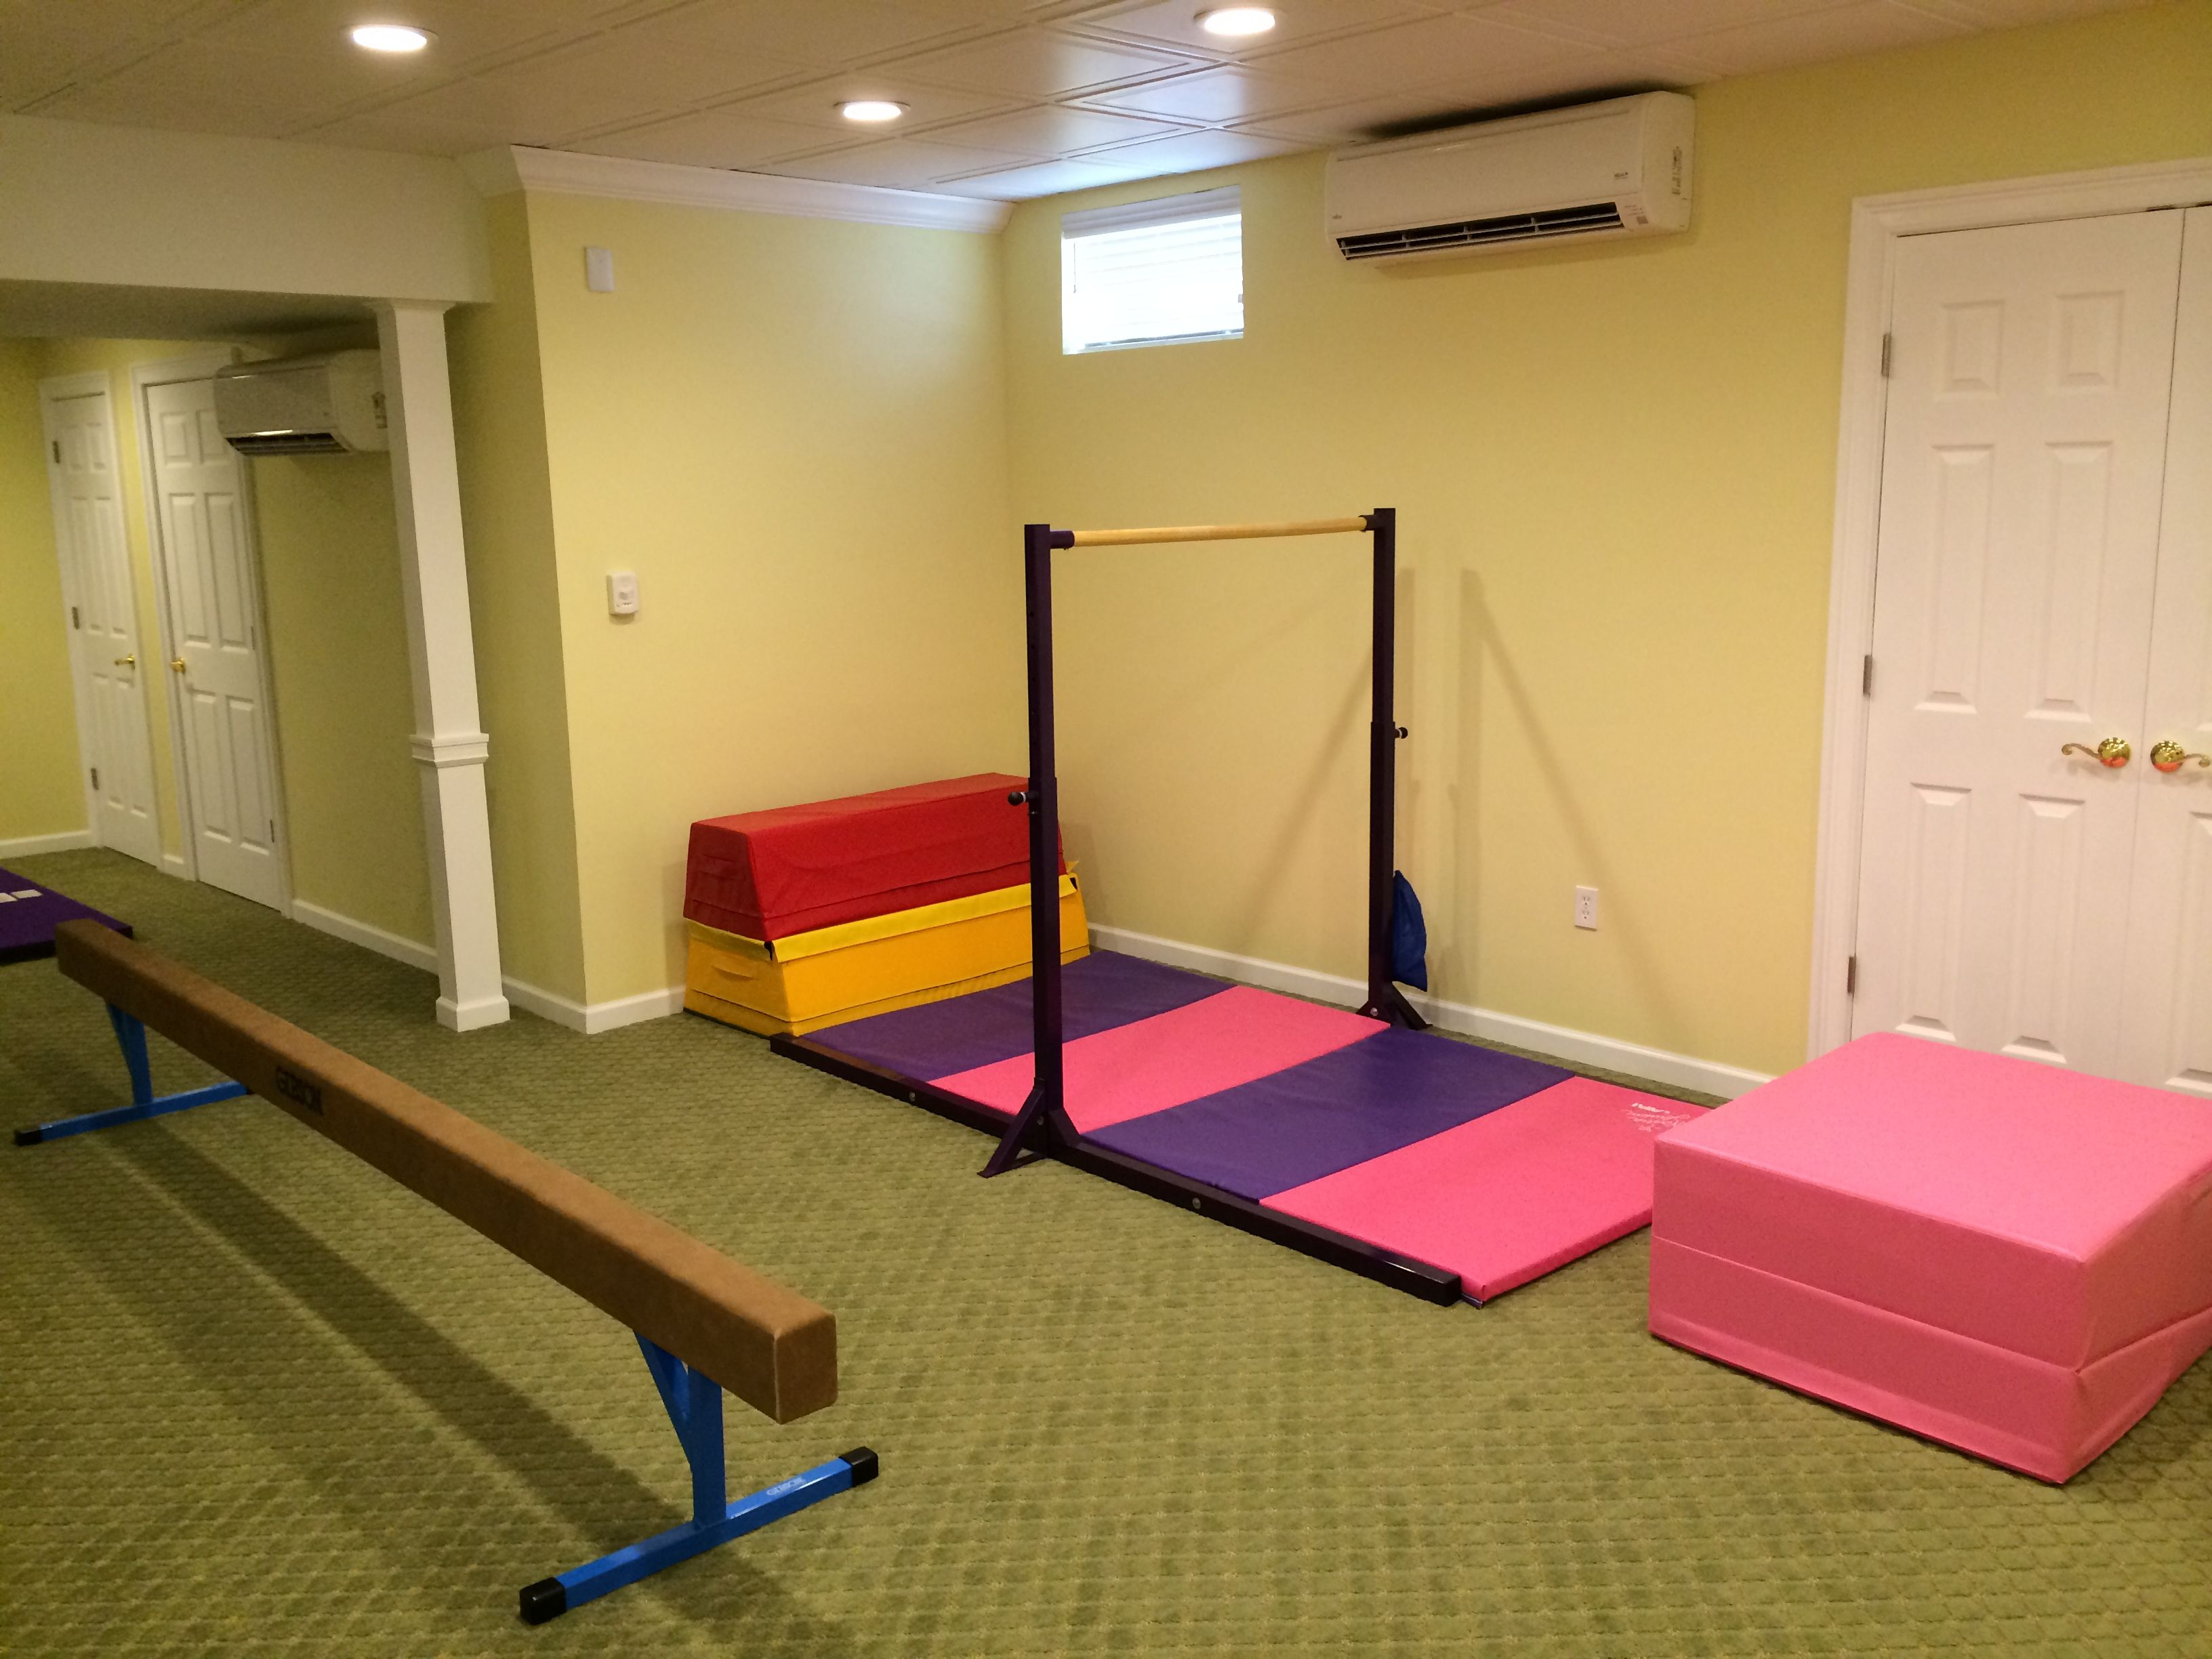 Basement Ideas For Kids Basement Remodel With A Kids Gymnastics Area Gymnastics